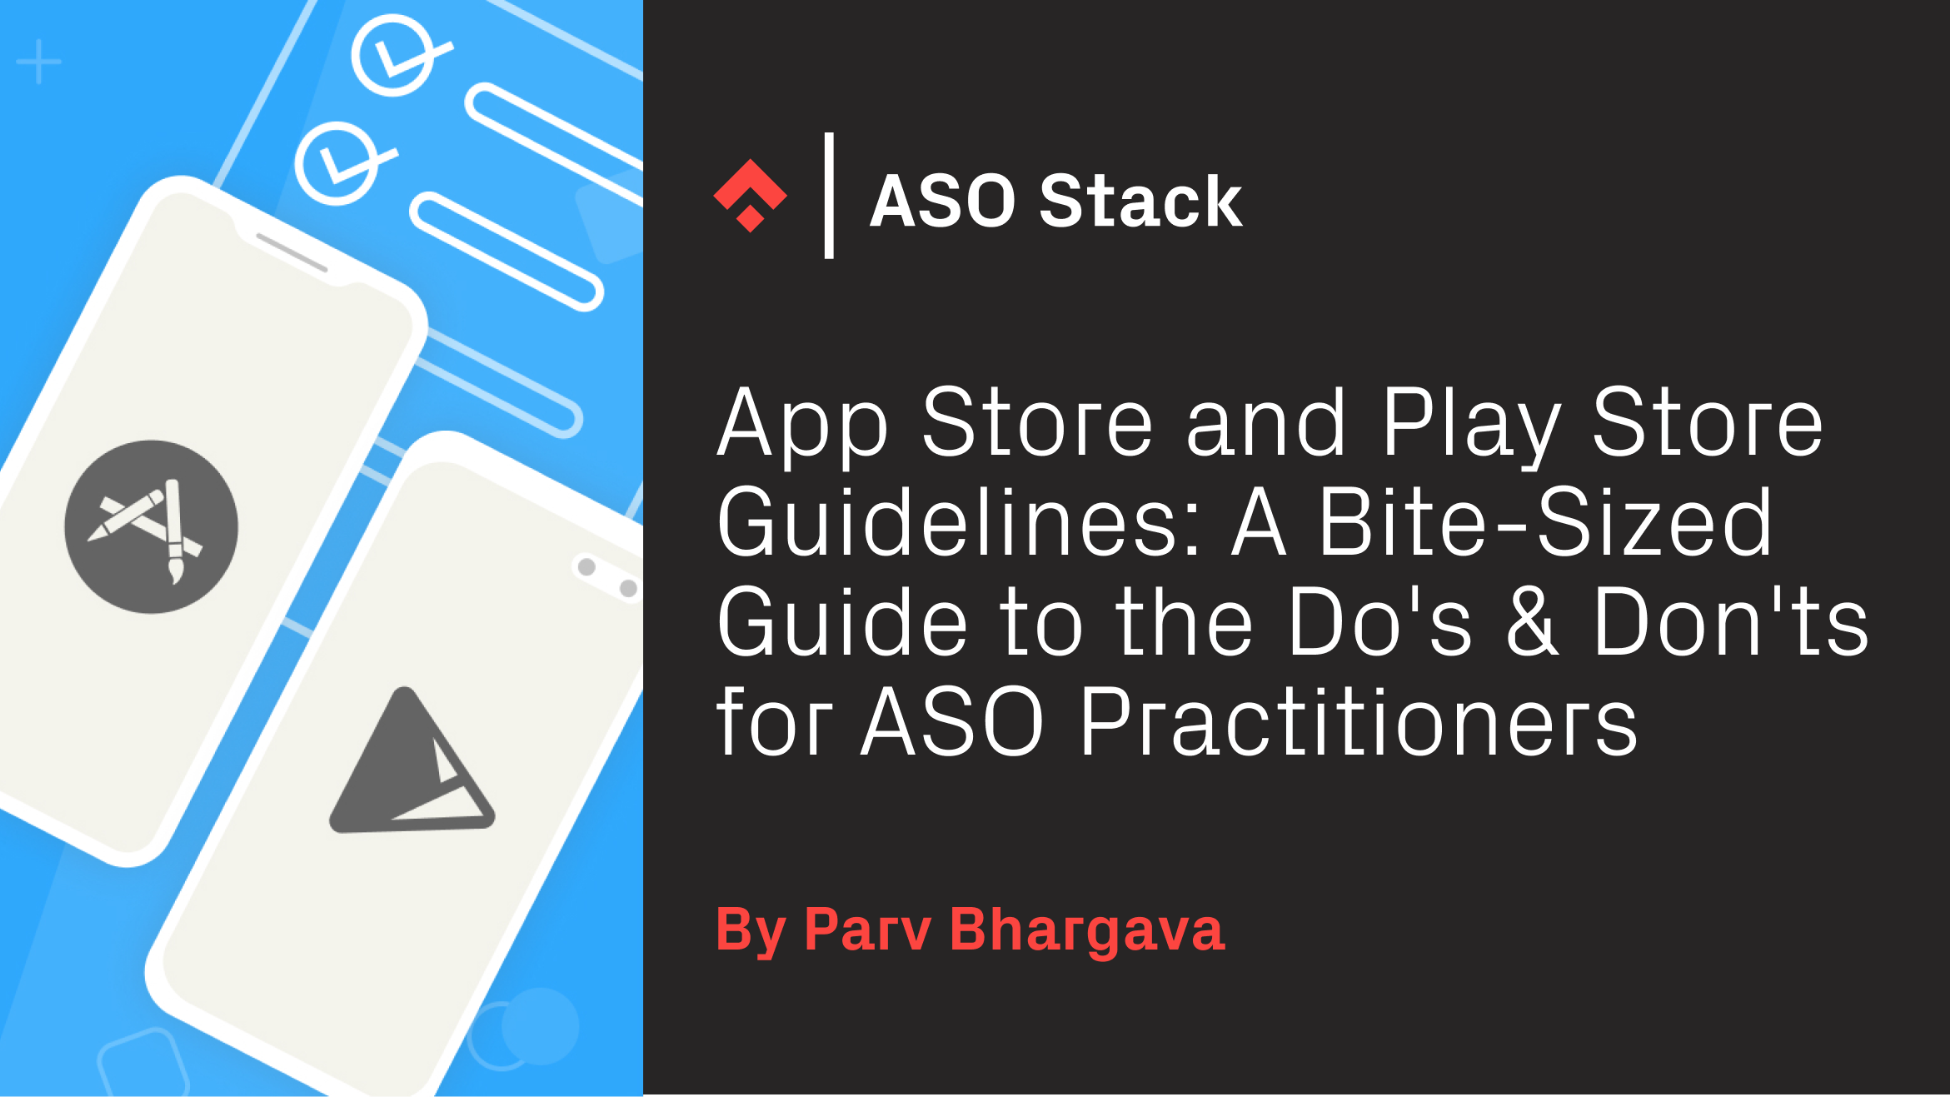 App Store and Play Store Guidelines: A Bite-Sized Guide to the Do's and Don'ts for ASO Practitioners